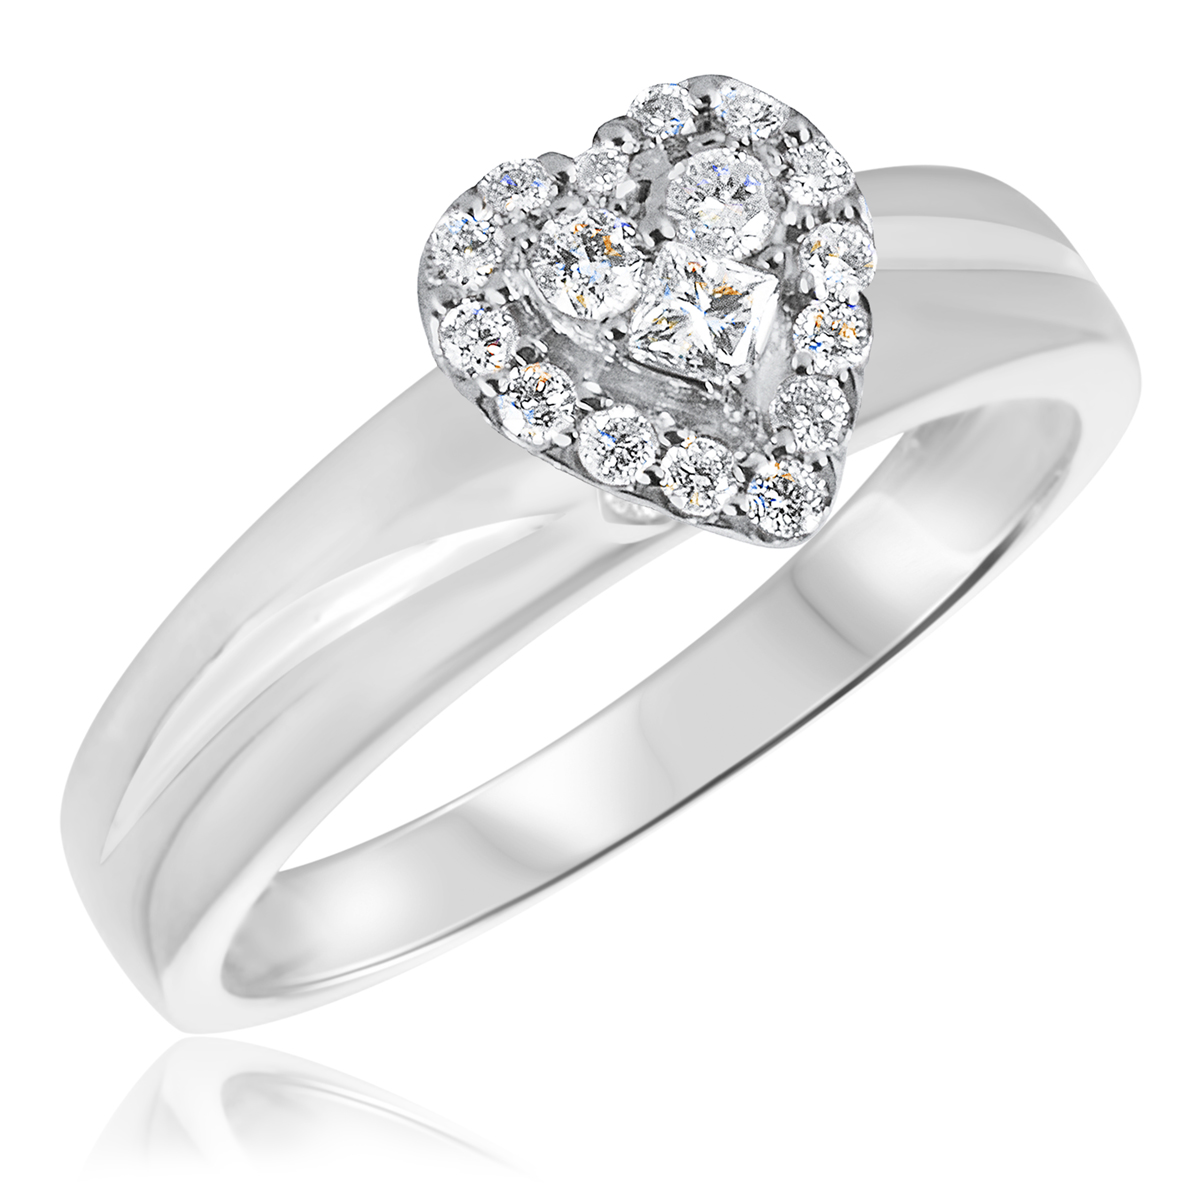 1/3 CT. T.W. Diamond Ladies Engagement Ring 14K White Gold- Size 8